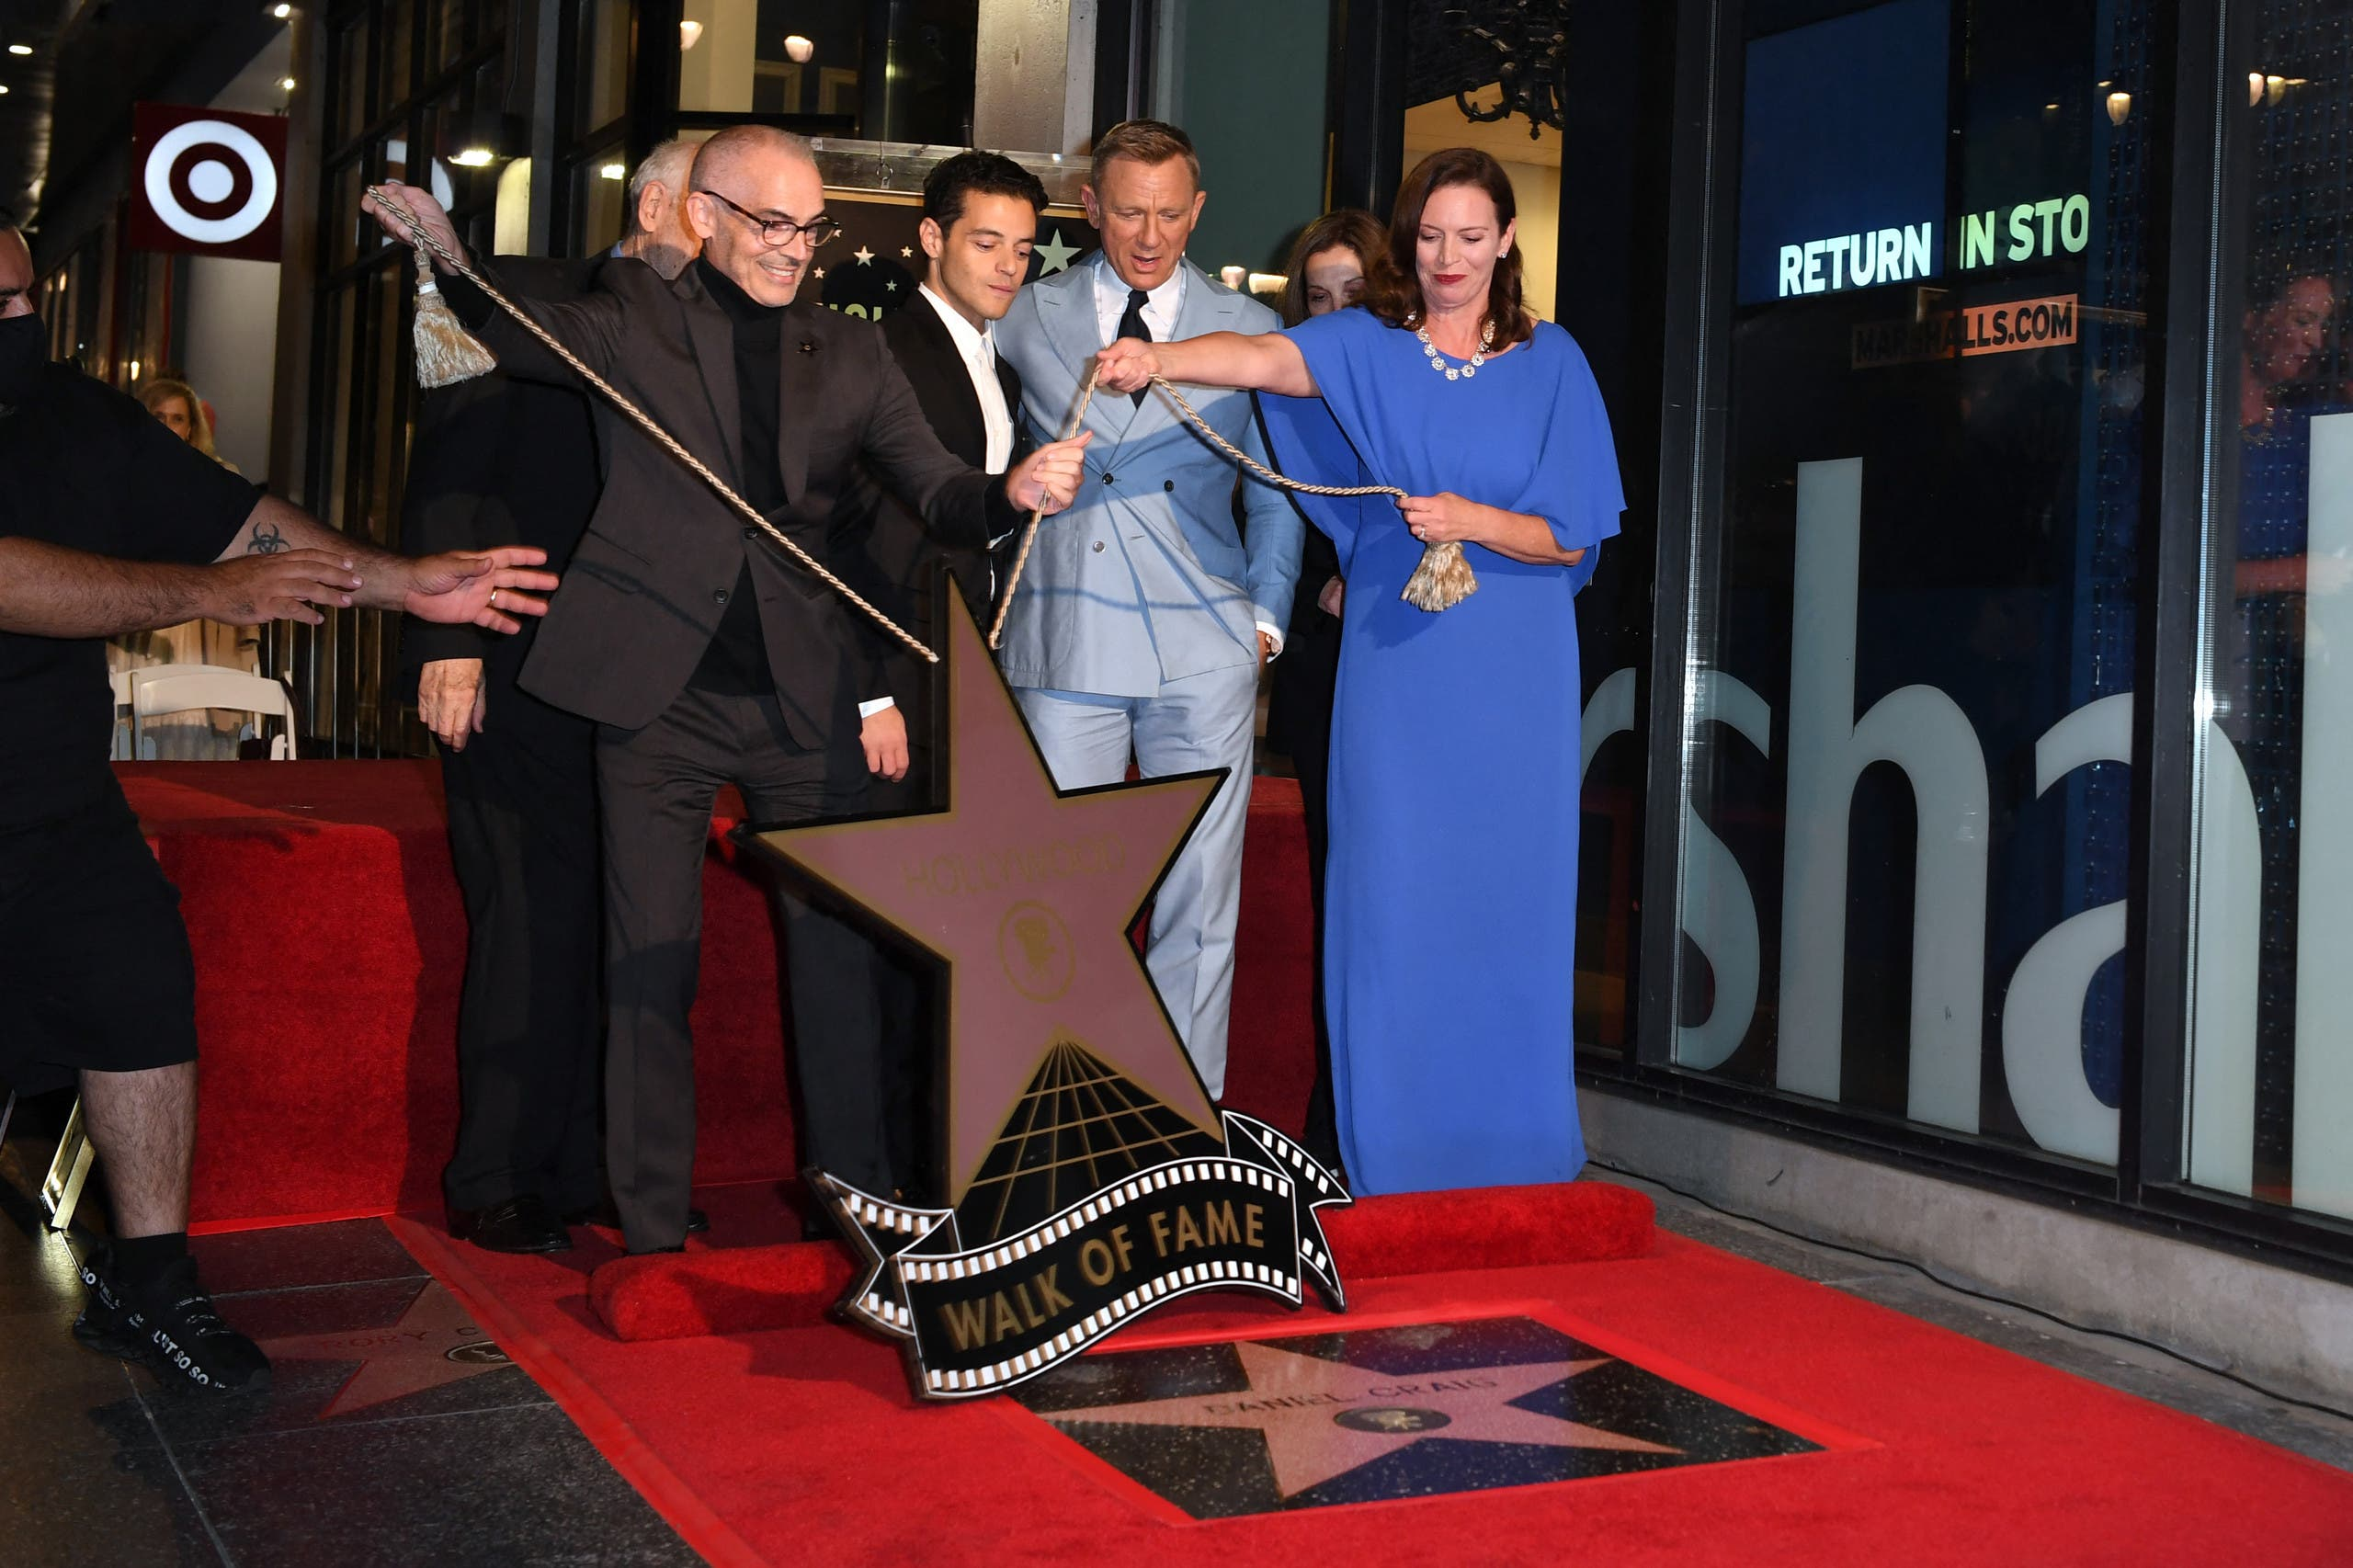 British actor Daniel Craig (2nd R), reacts as his star is unveiled, flanked by Chamber of Commerce Chair Nicole Mihalka (R), US actor Rami Malek (3rd R) and Los Angeles City Councilmember Mitch O'Farrell during the ceremony to honor him with a star on the Hollywood Walk of Fame in Los Angeles, California, on October 6, 2021.  (AFP)